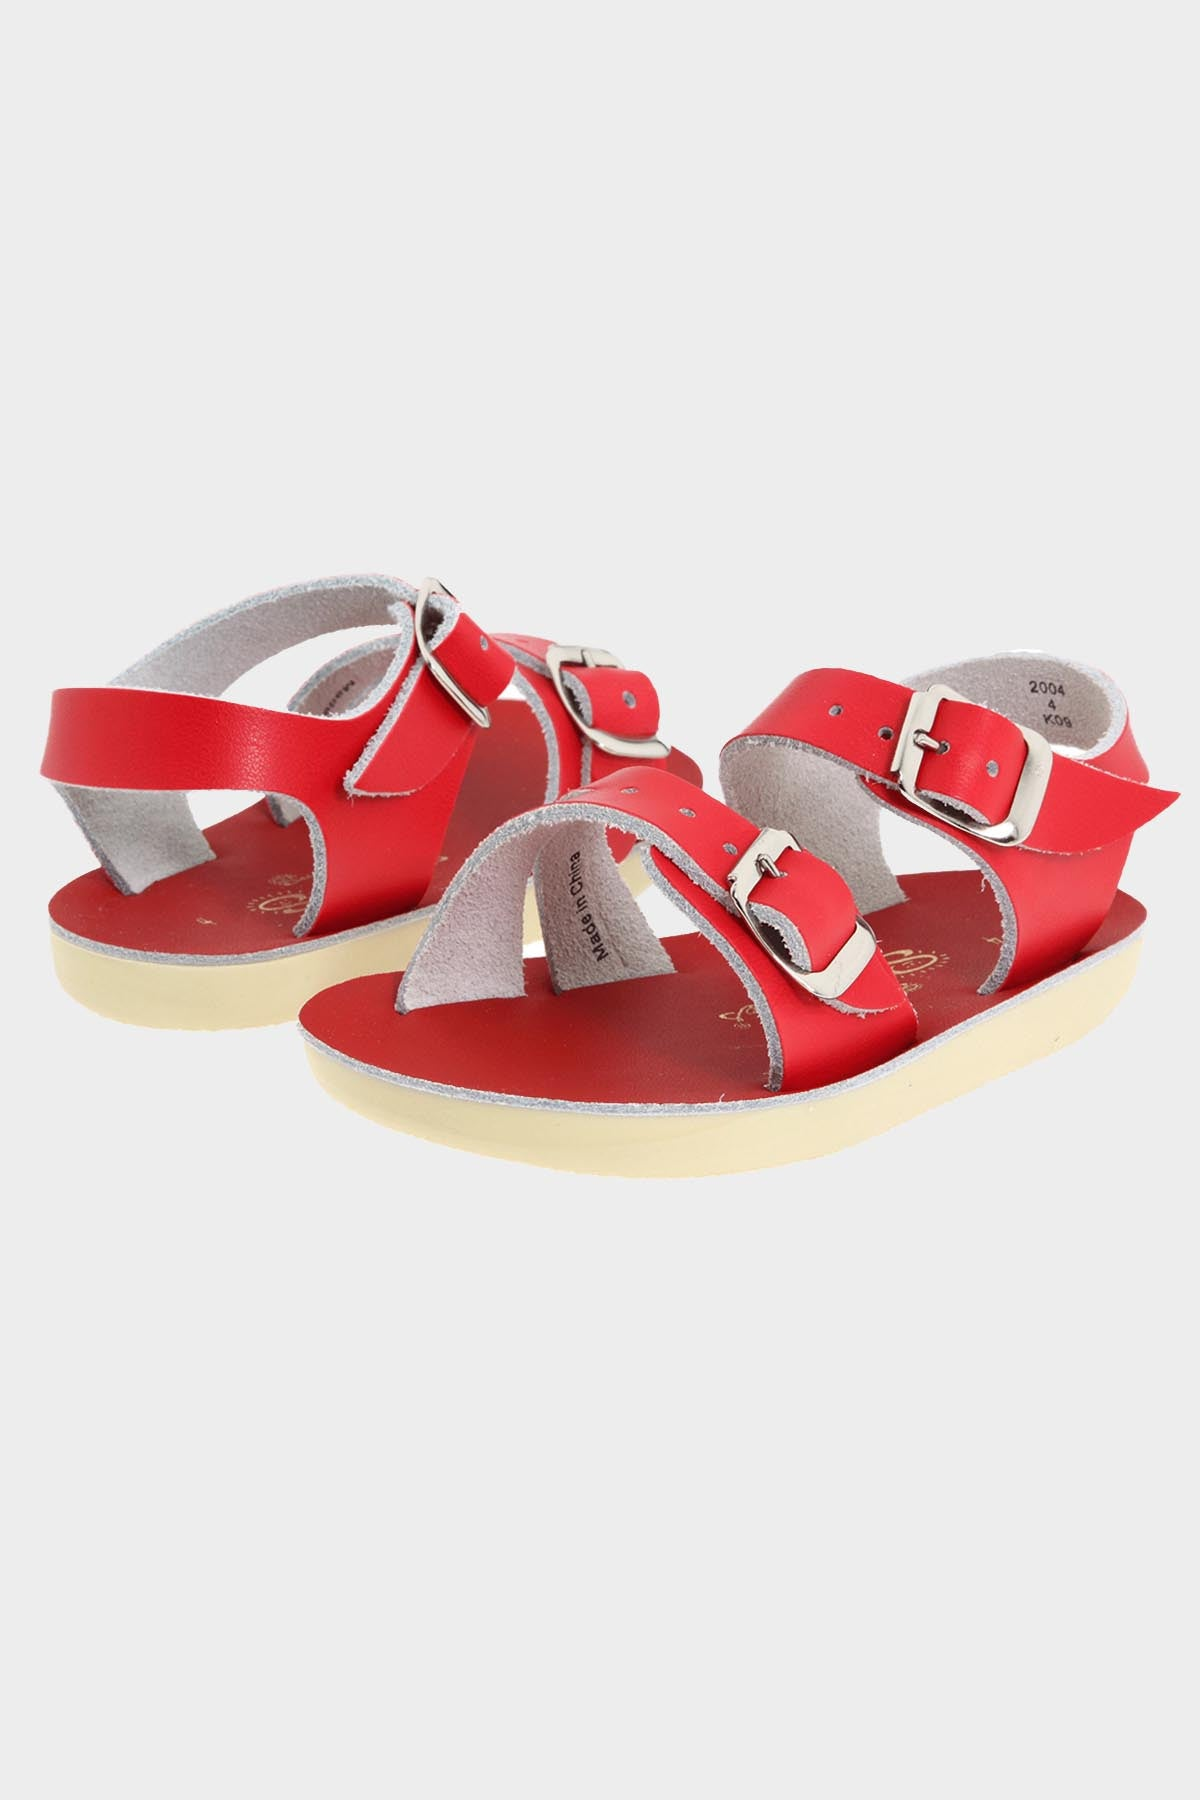 Sea Wees Leather Sandal- Red